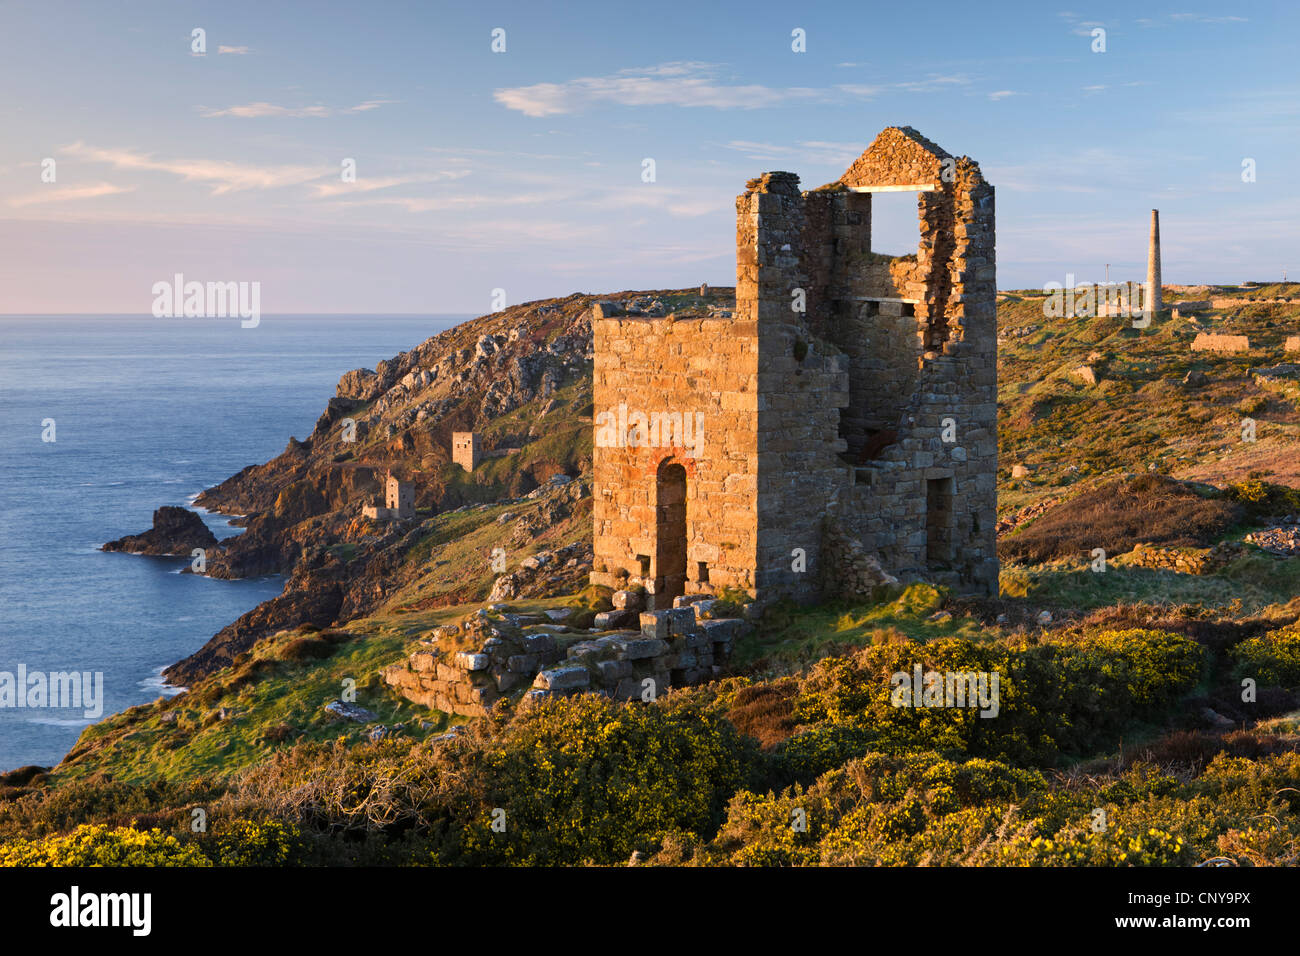 Abandoned tin mines on the Cornish cliffs near Botallack, Cornwall, England. Spring (April) 2010. - Stock Image